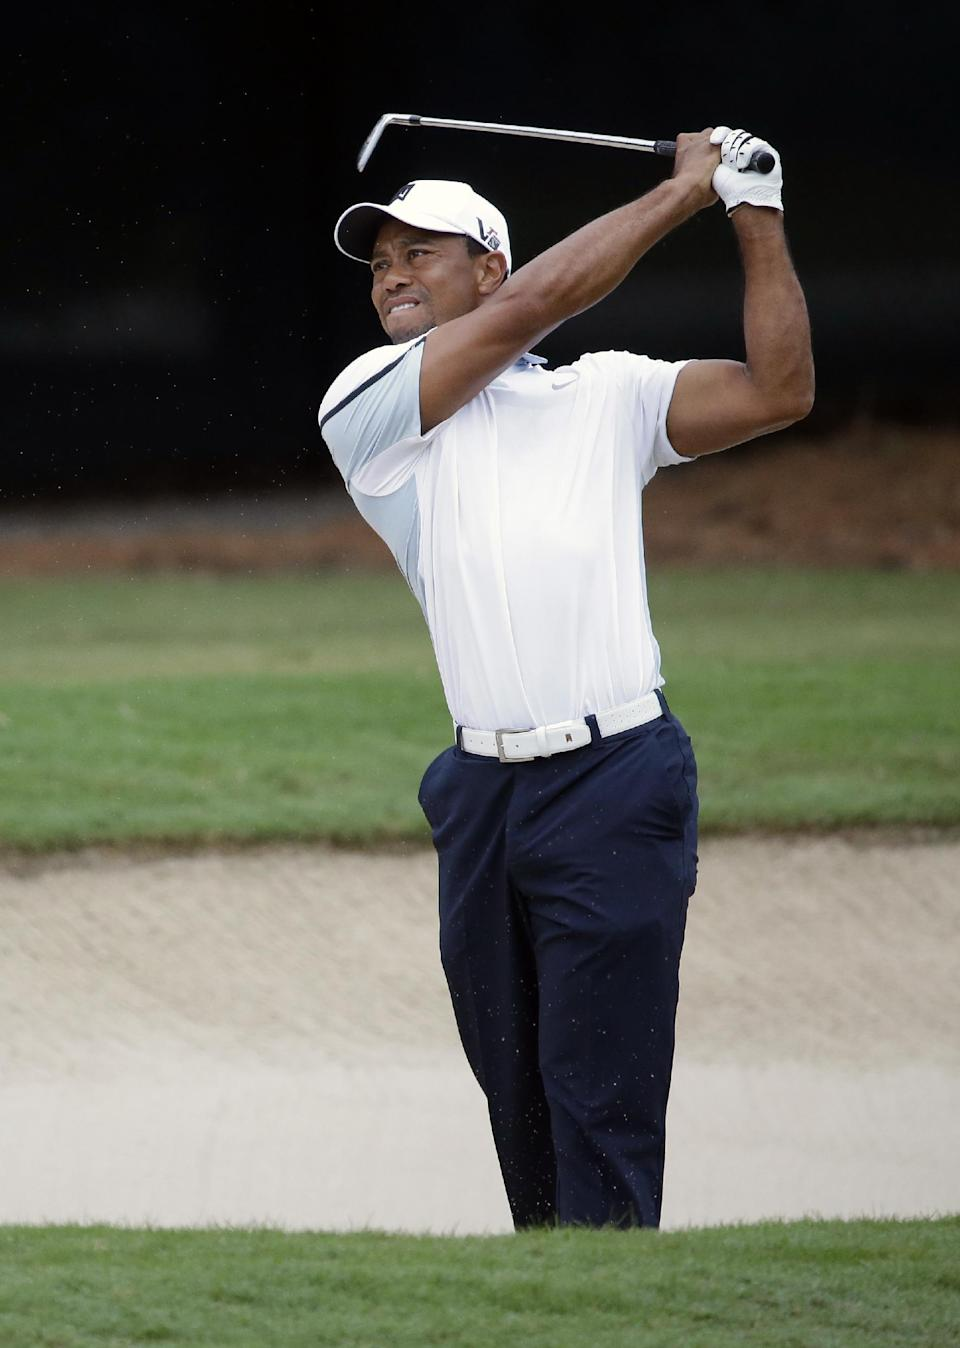 Tiger Woods hits out of the bunker on the fourth hole during the third round of play in the Tour Championship golf tournament at East Lake Golf Club, in Atlanta, Saturday, Sept. 21, 2013. (AP Photo/David Goldman)